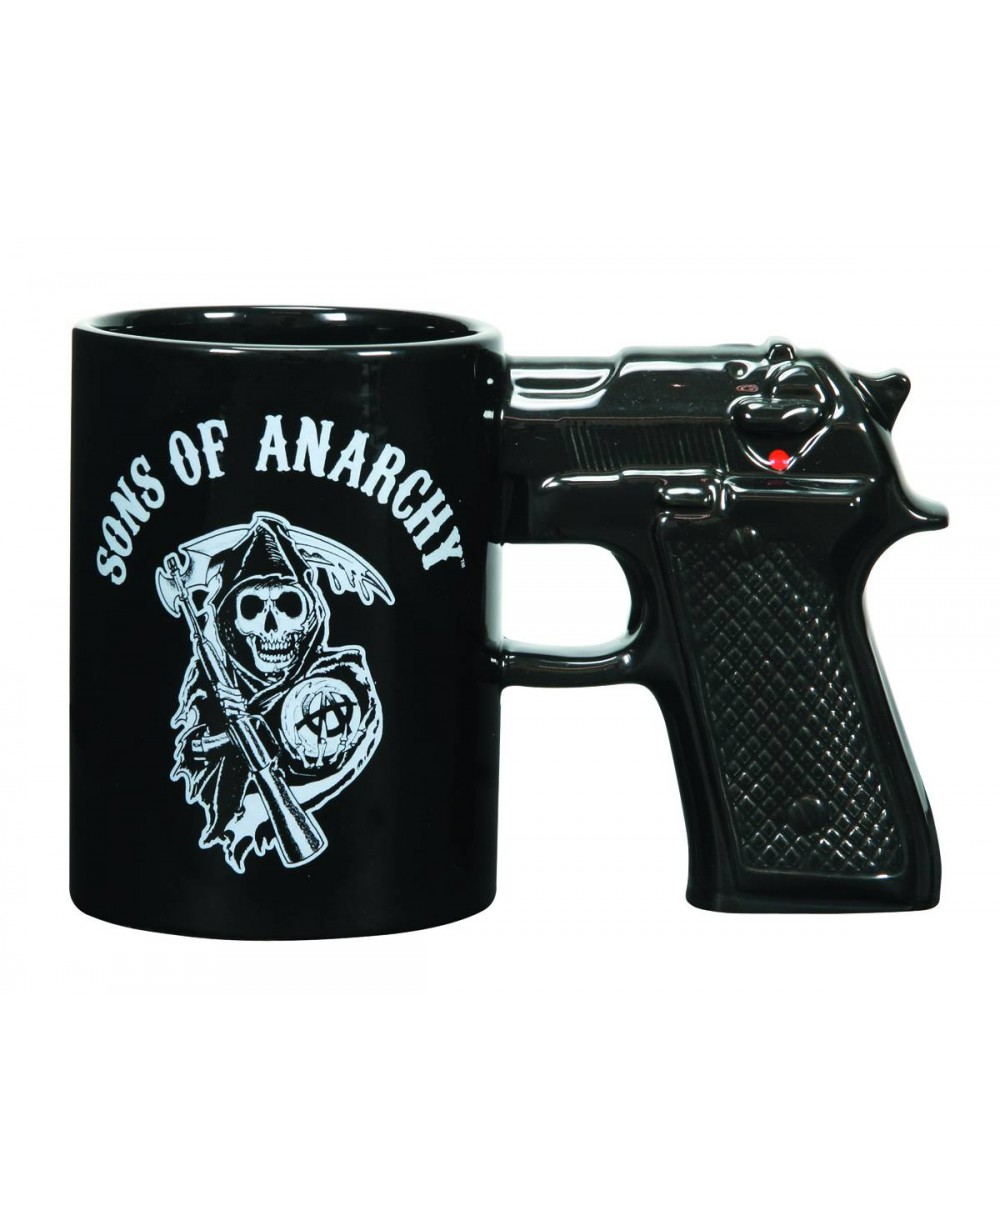 Sons Of Anarchy Gun Coffee Mug